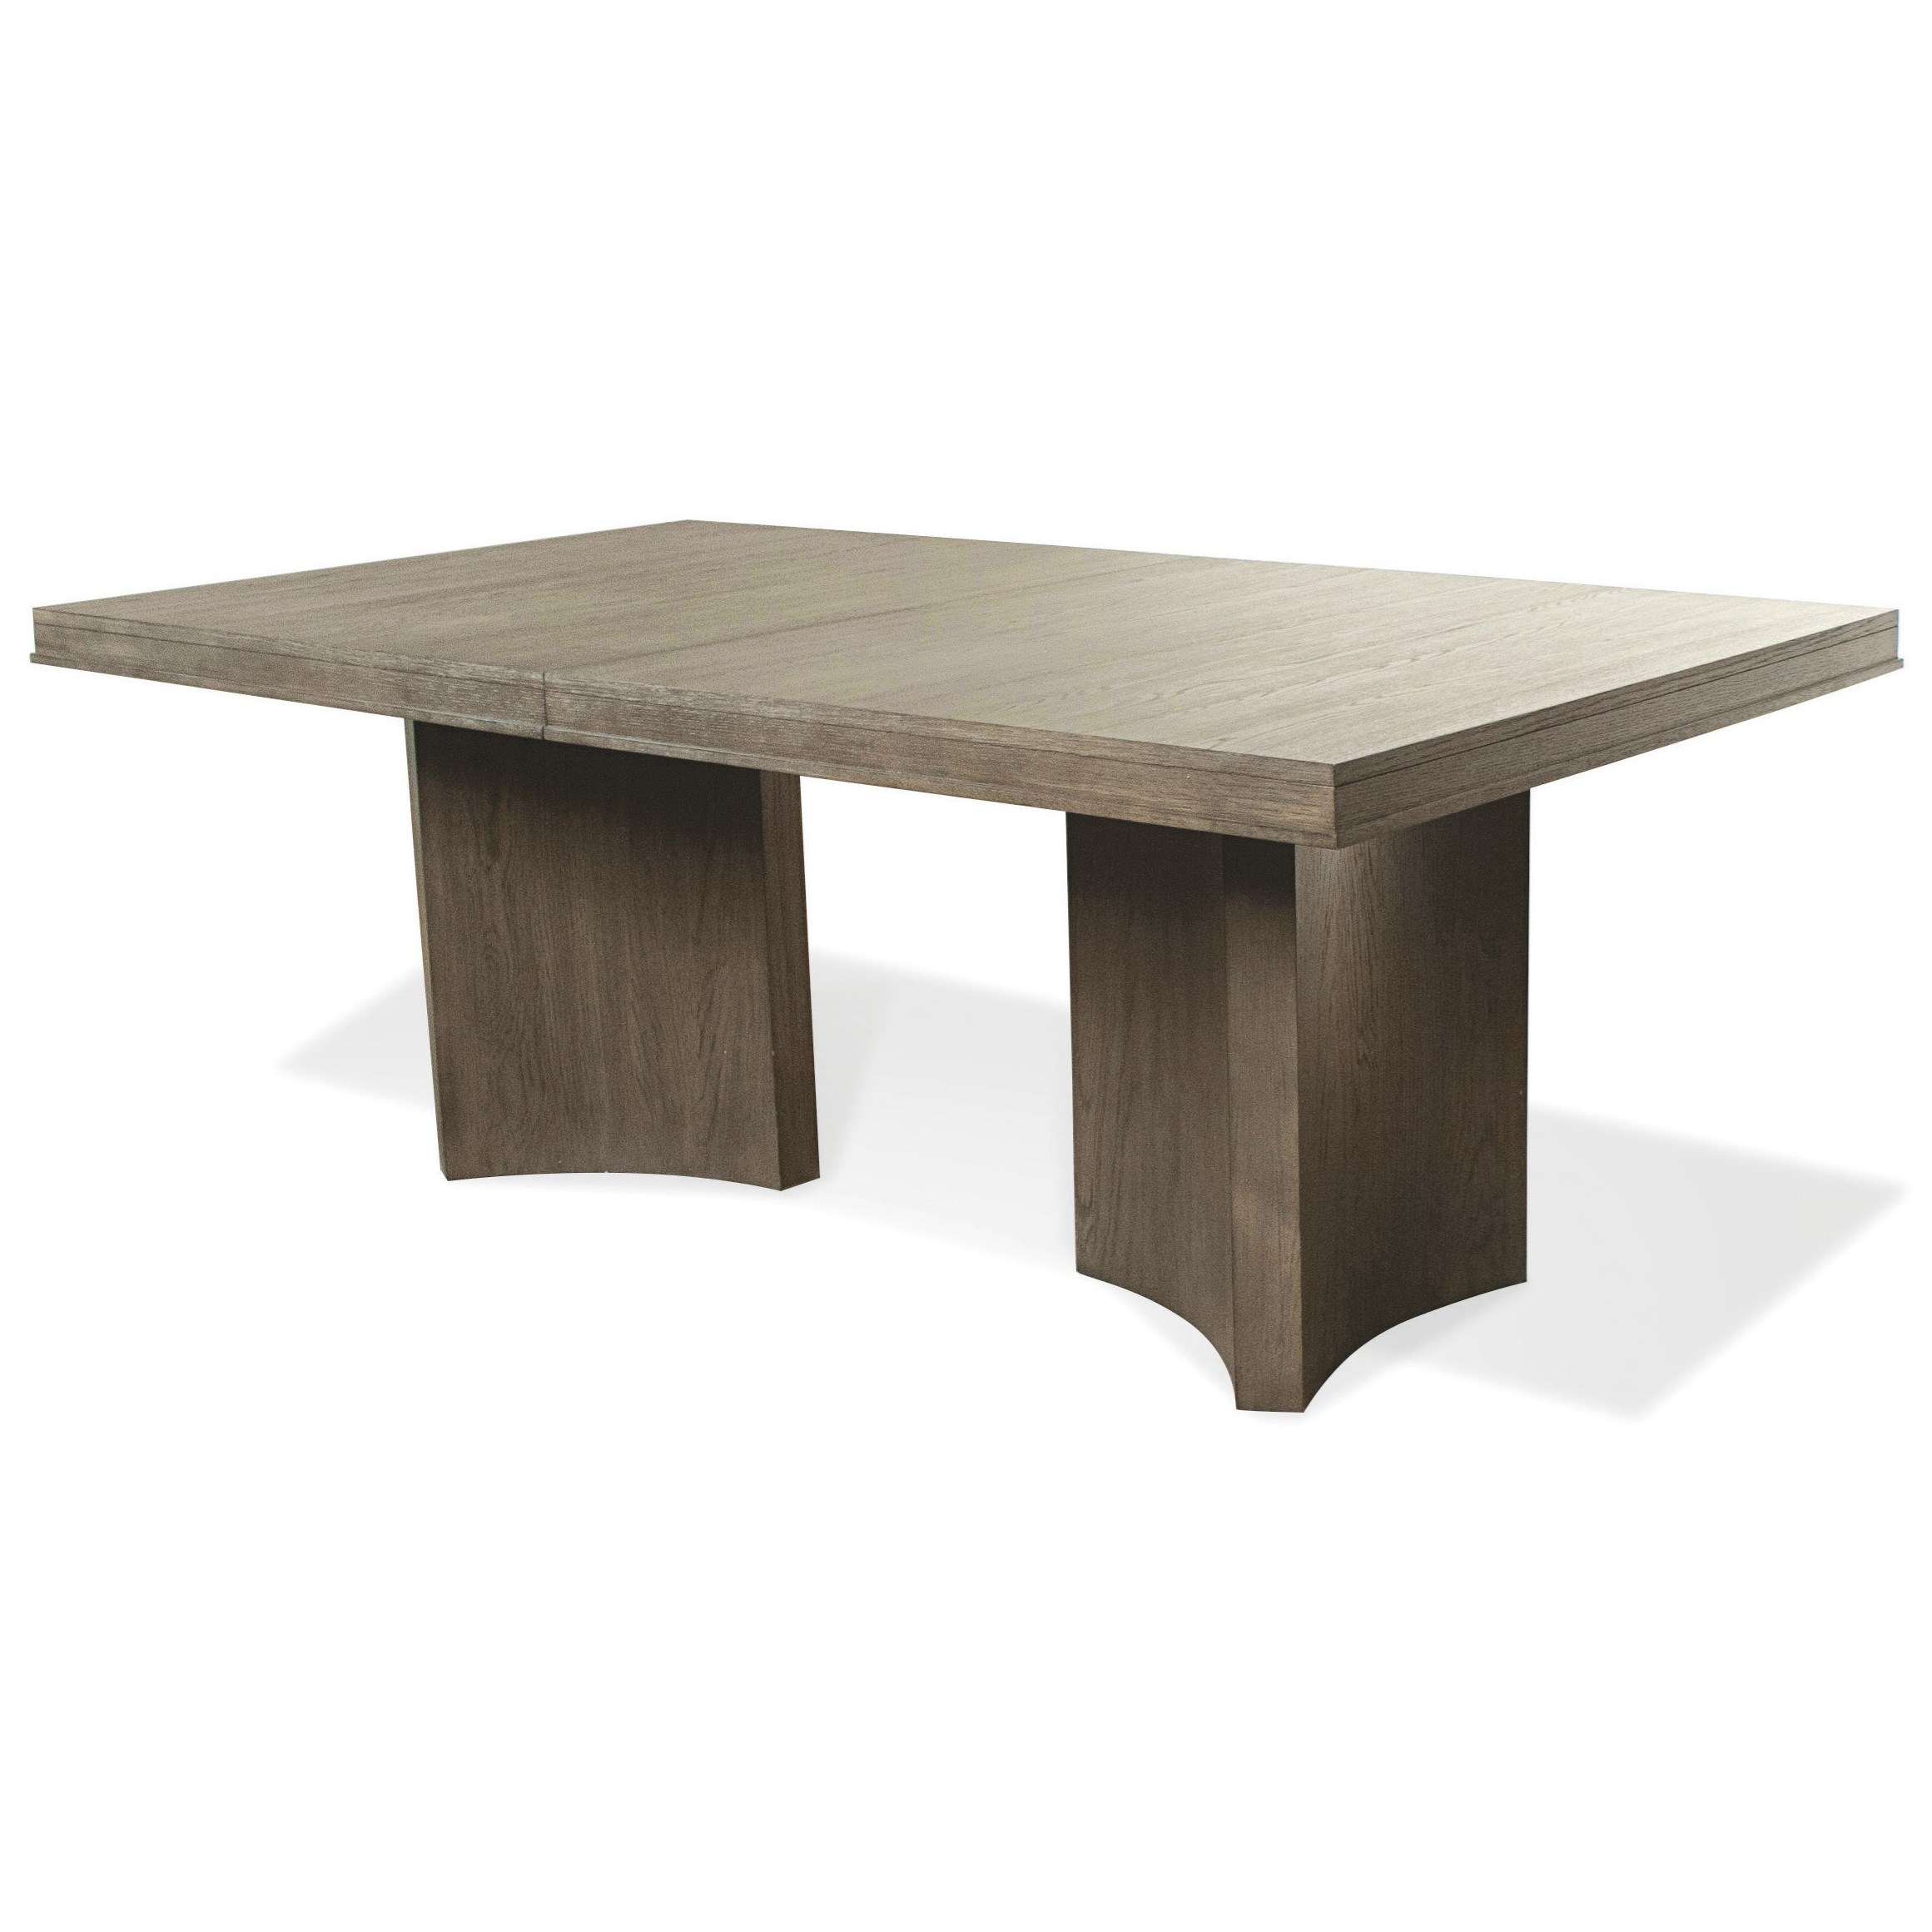 Riverside Furniture Precision Contemporary Pedestal Dining Table with 2  Leaves | Dunk u0026 Bright Furniture | Dining Tables